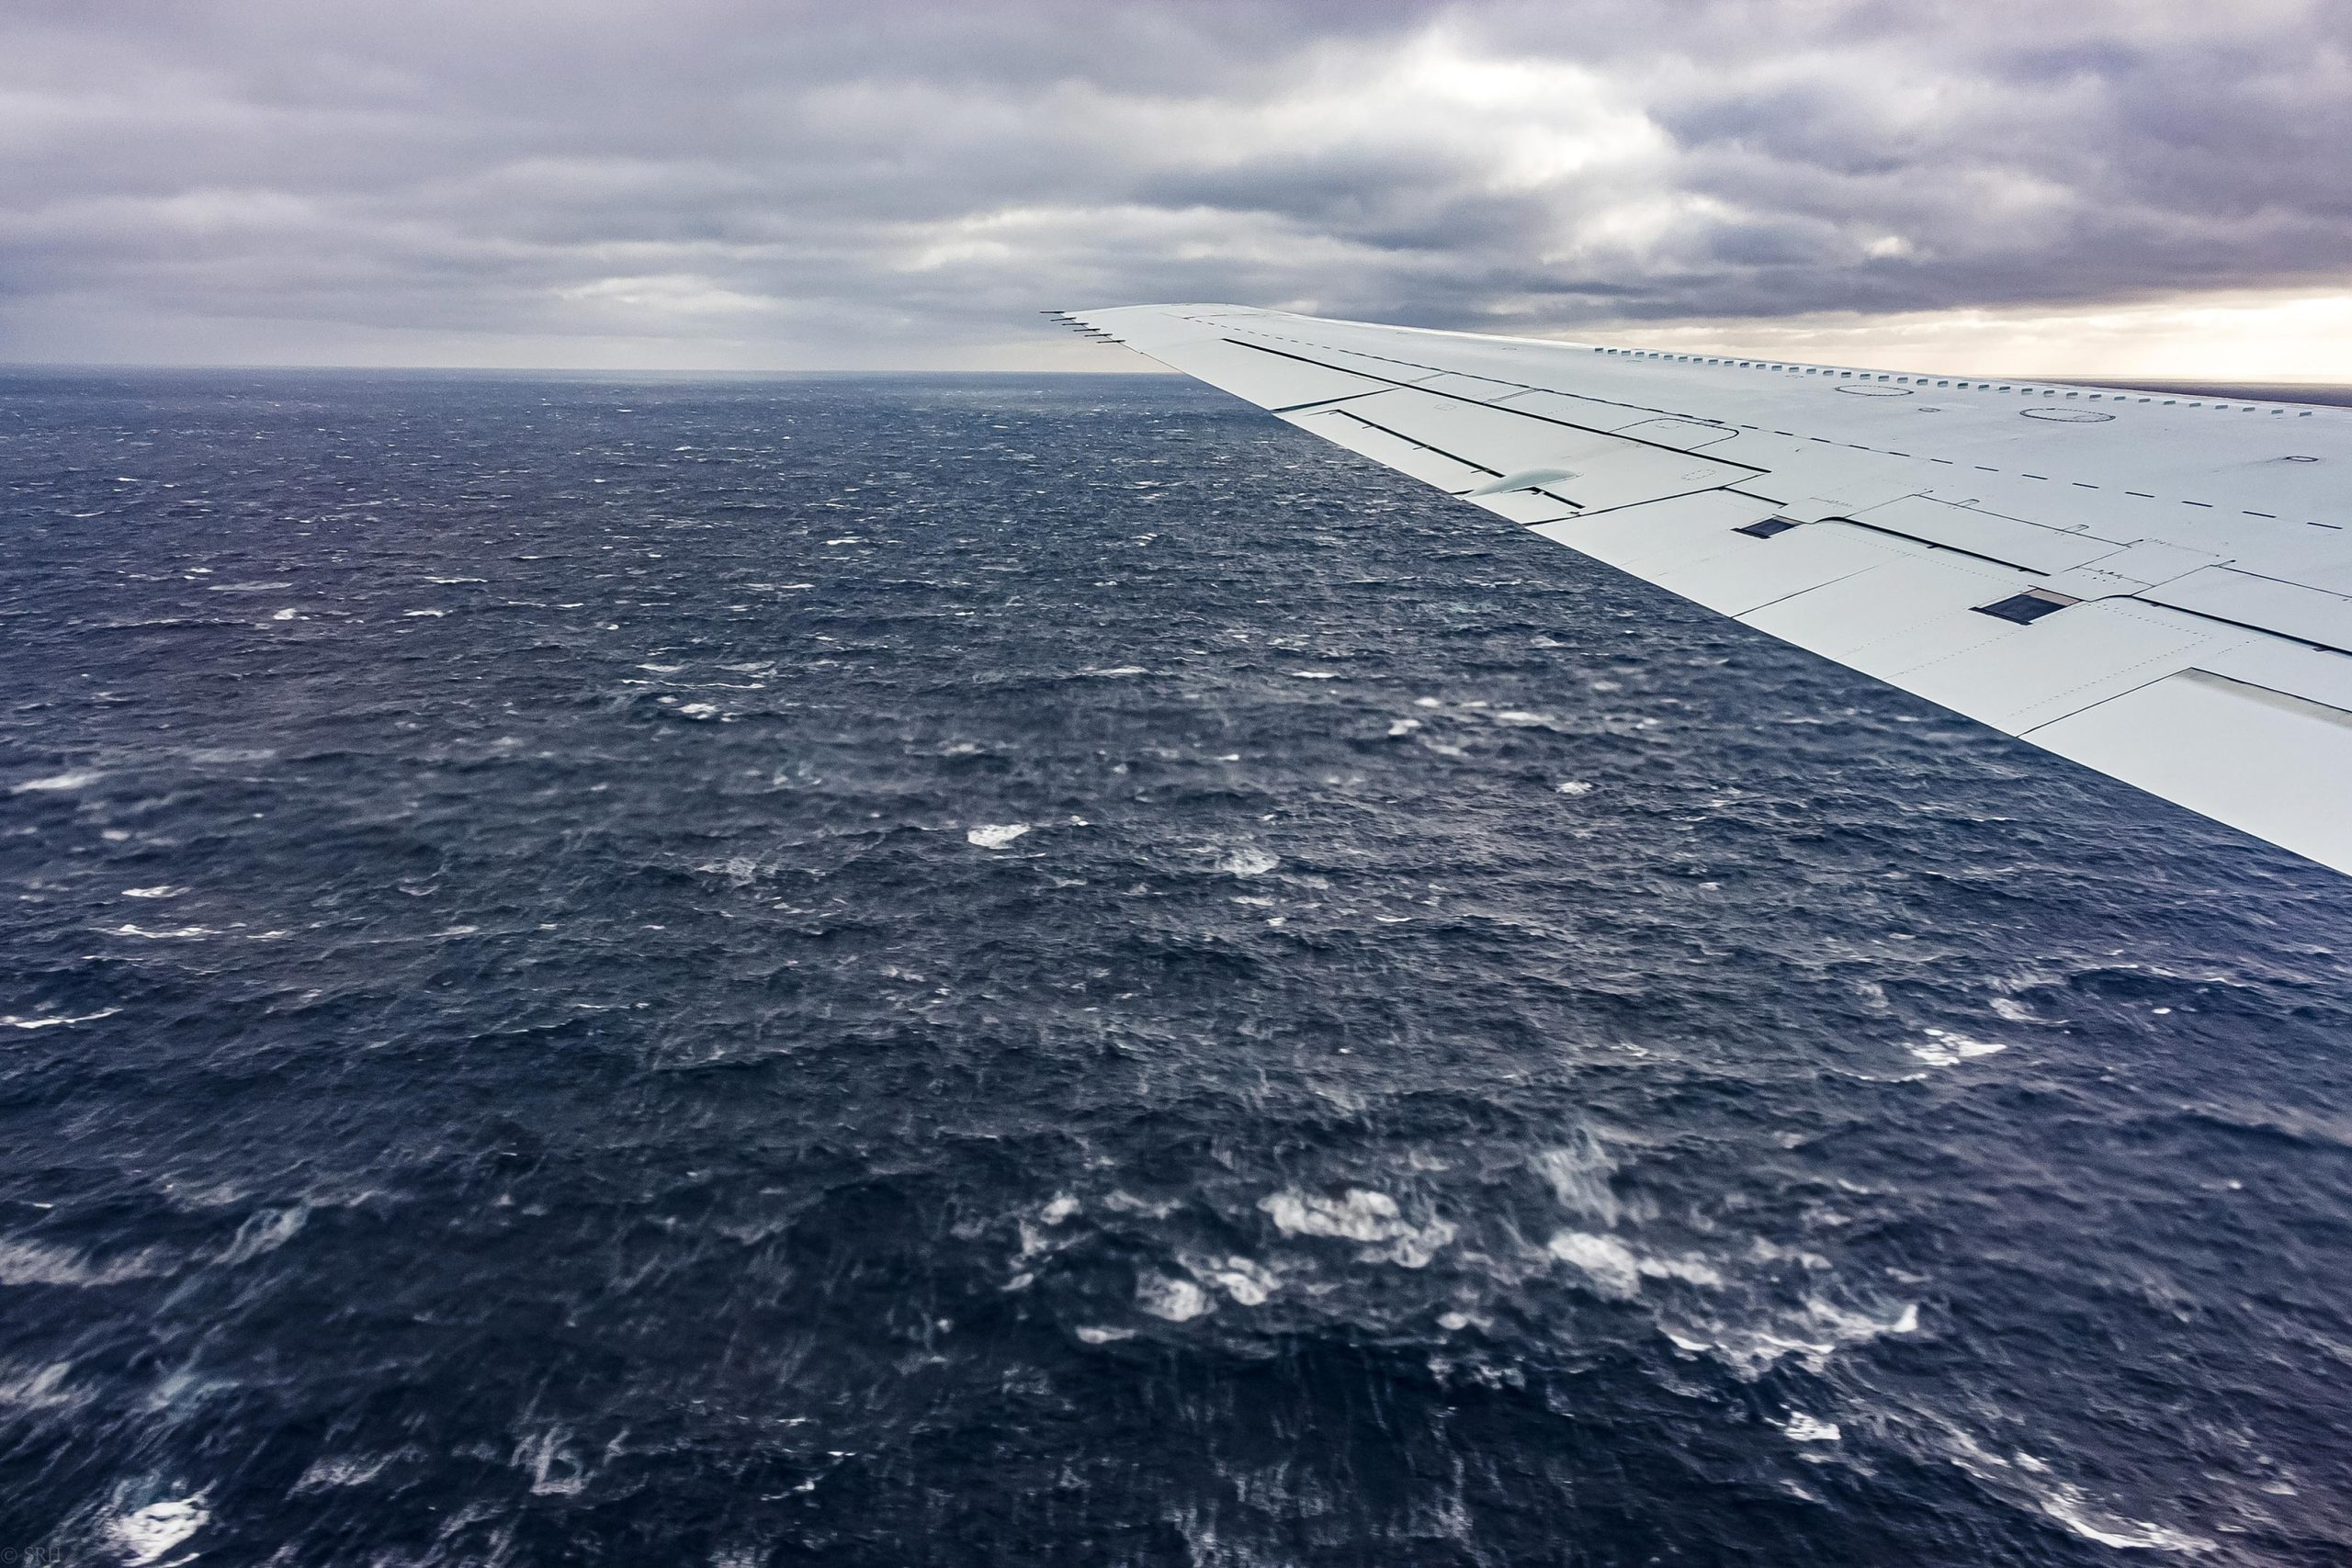 Massive Flying Laboratory Uncovers Secrets of How Marine Life Influences Cloud Formation – SciTechDaily